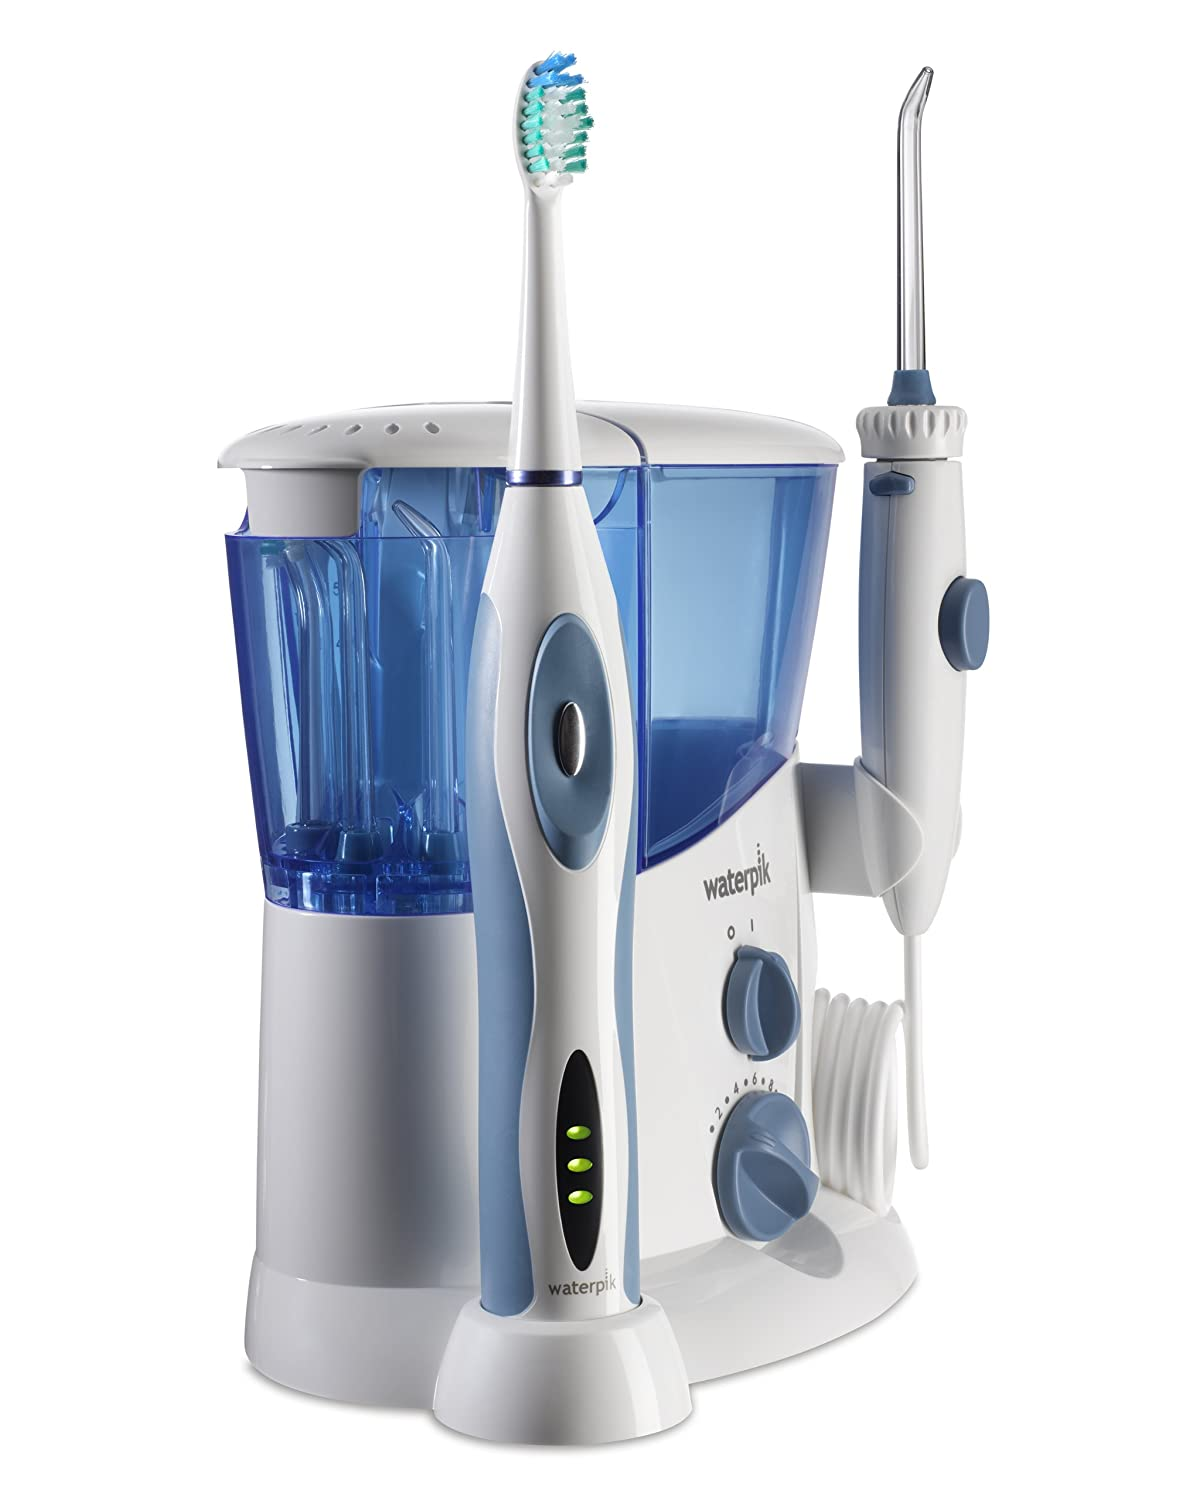 water flosser reviews Best Water flosser : Top 5 list and in-depth Water flosser Reviews of 2018 71ERsA99bdL